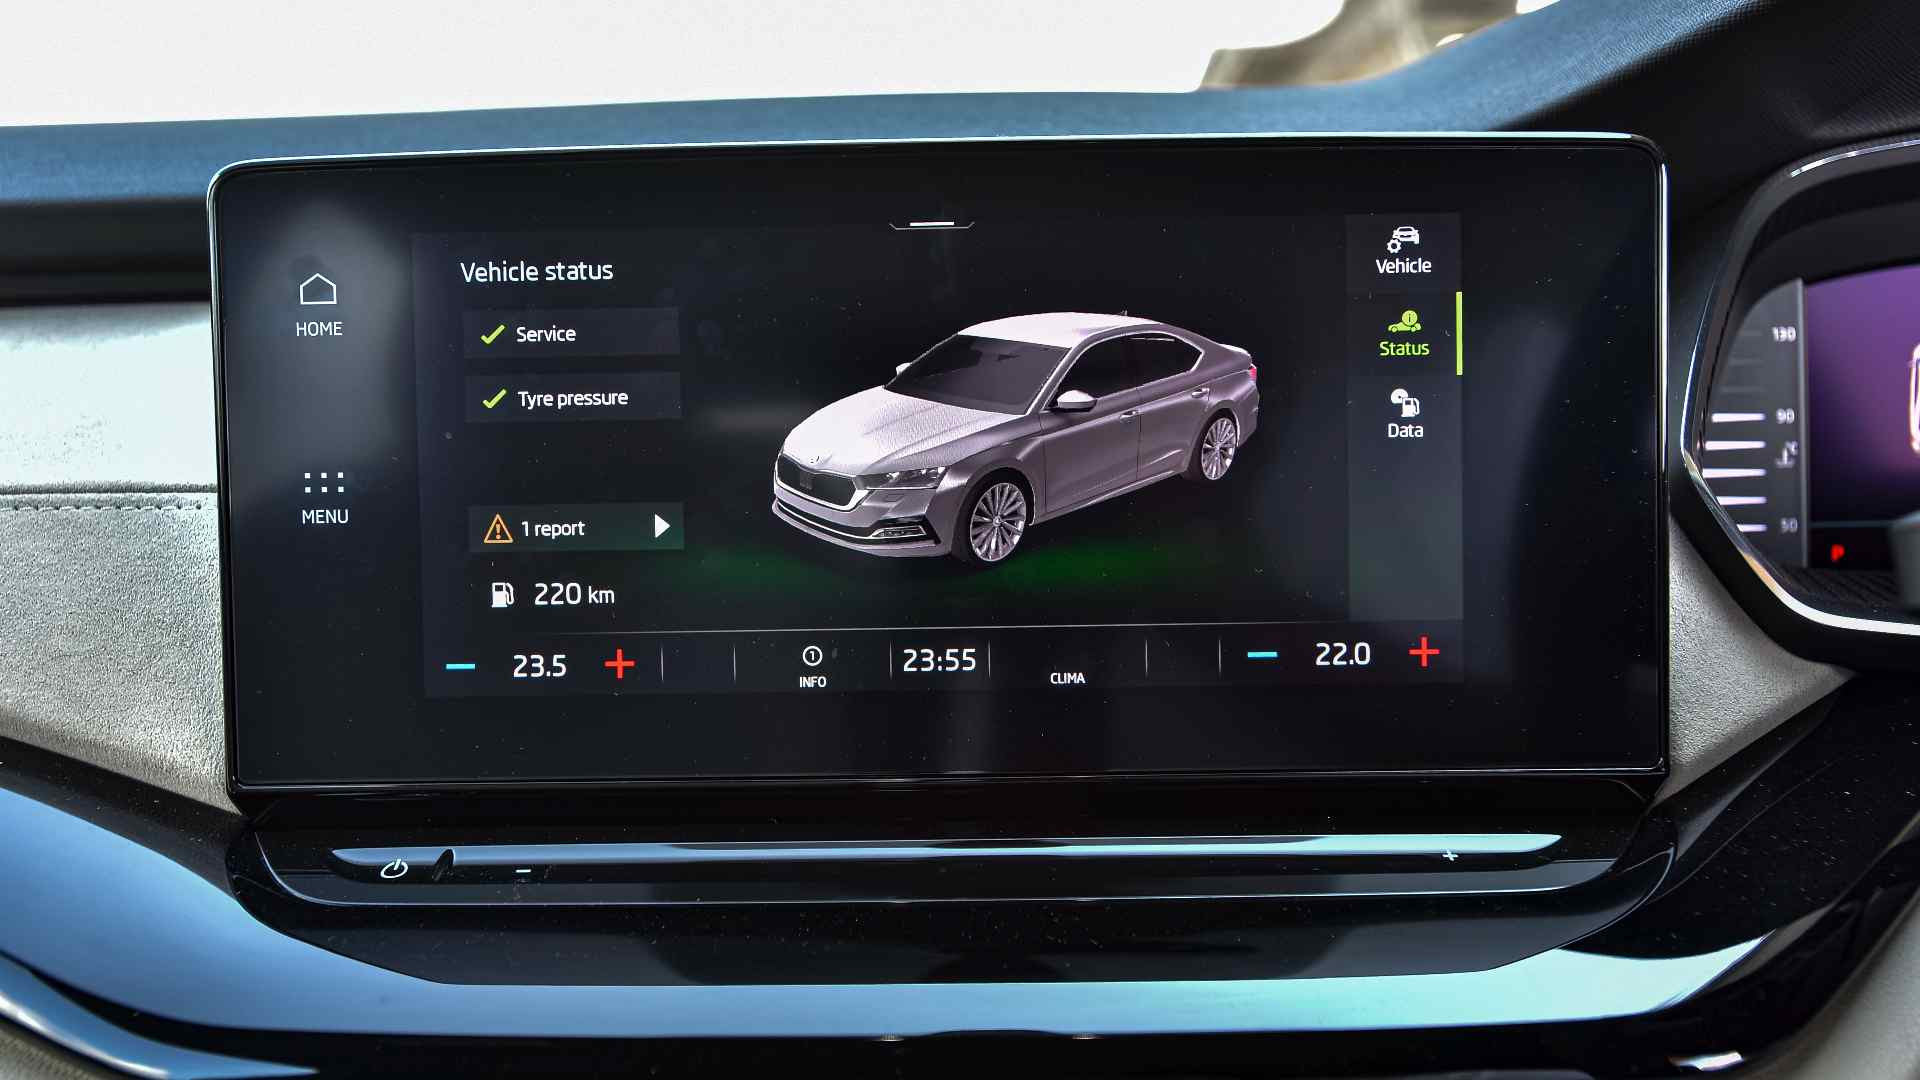 High-res 10-inch touchscreen in the 2021 Skoda Octavia is crisp and easy to use. Image: Overdrive/Anis Shaikh